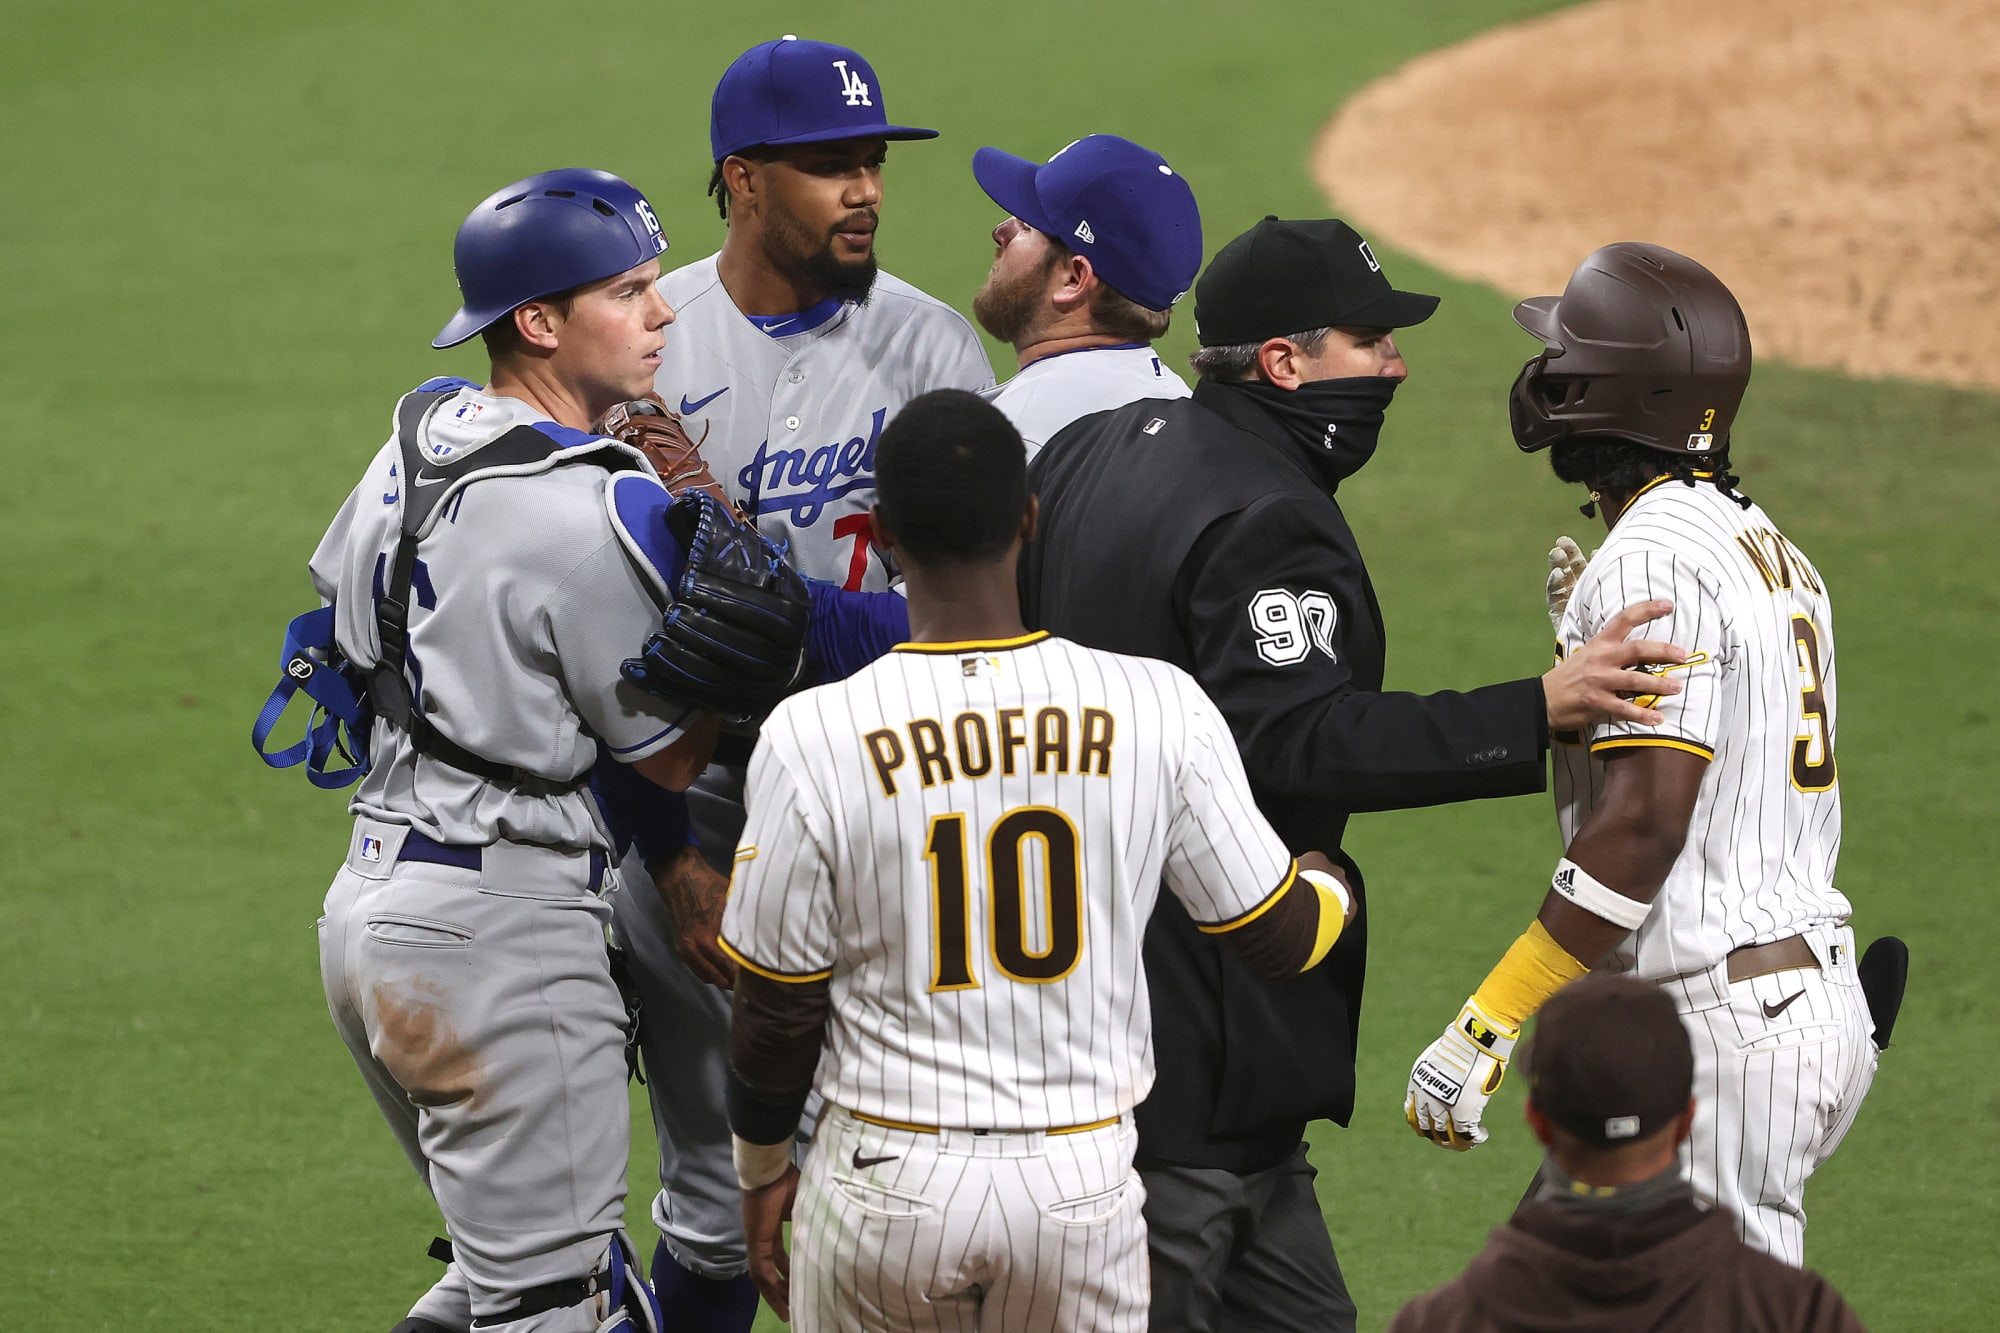 Padres-Dodgers is now the best rivalry in all of baseball